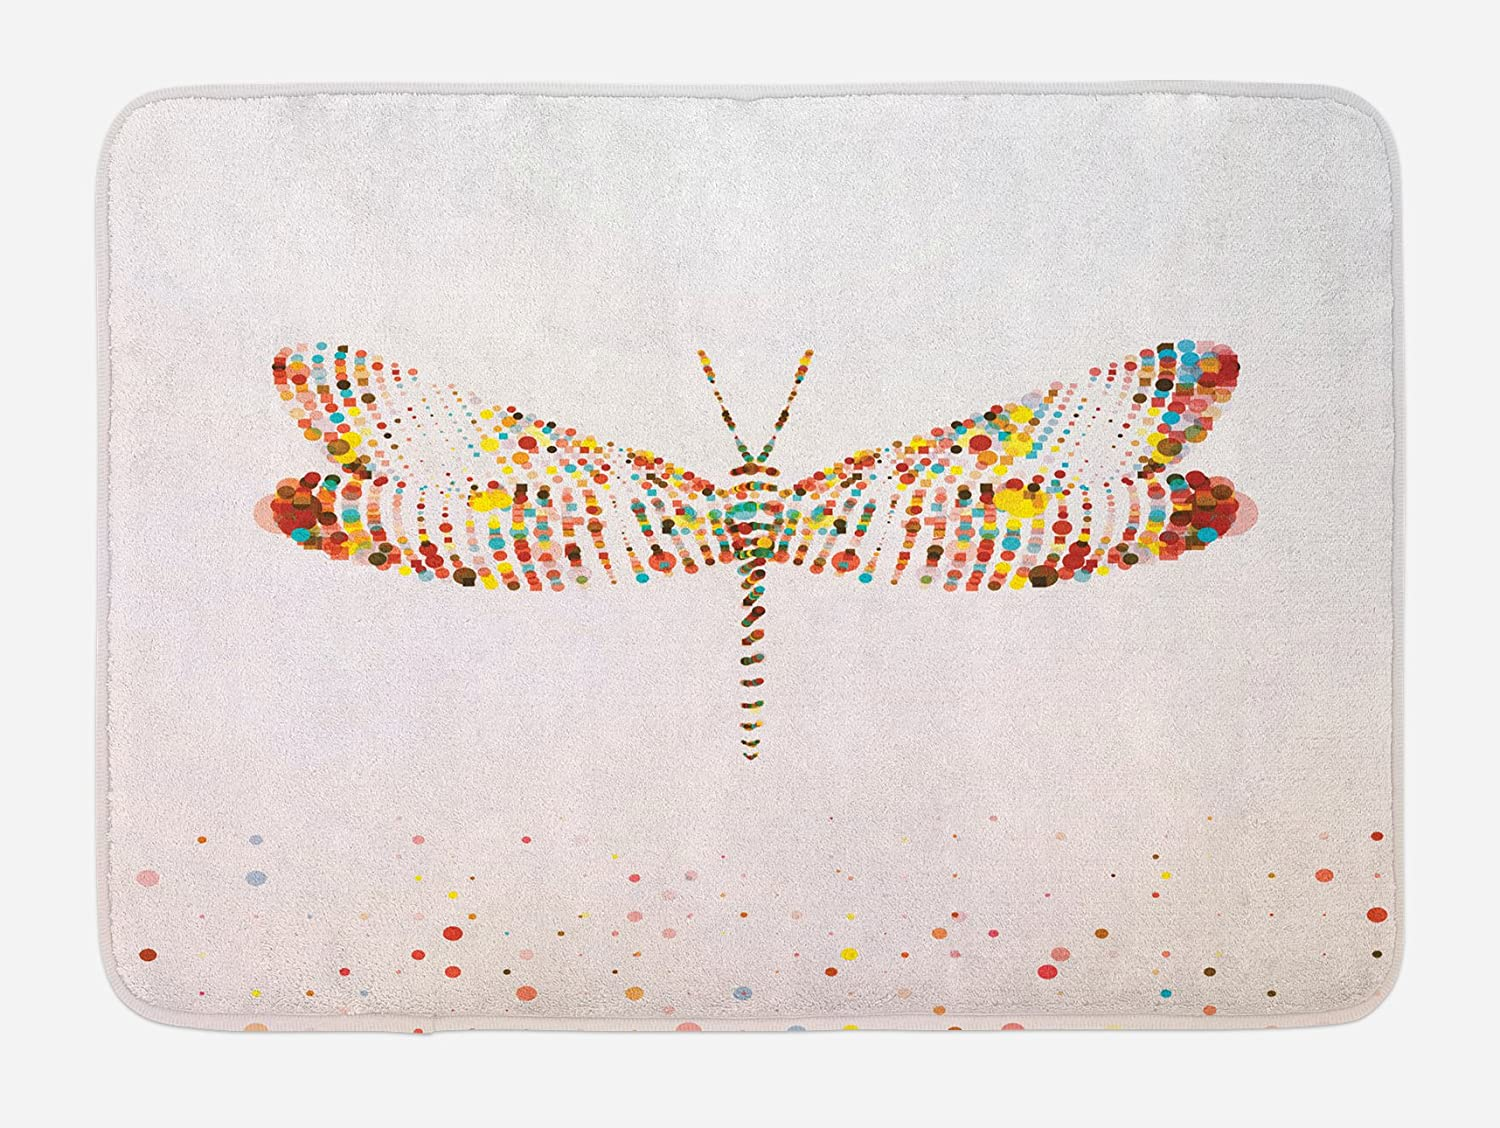 Animal Bath Mat Dragonfly with Dots Non-Slip Plush Mat 29.5 X 17.5 Inches